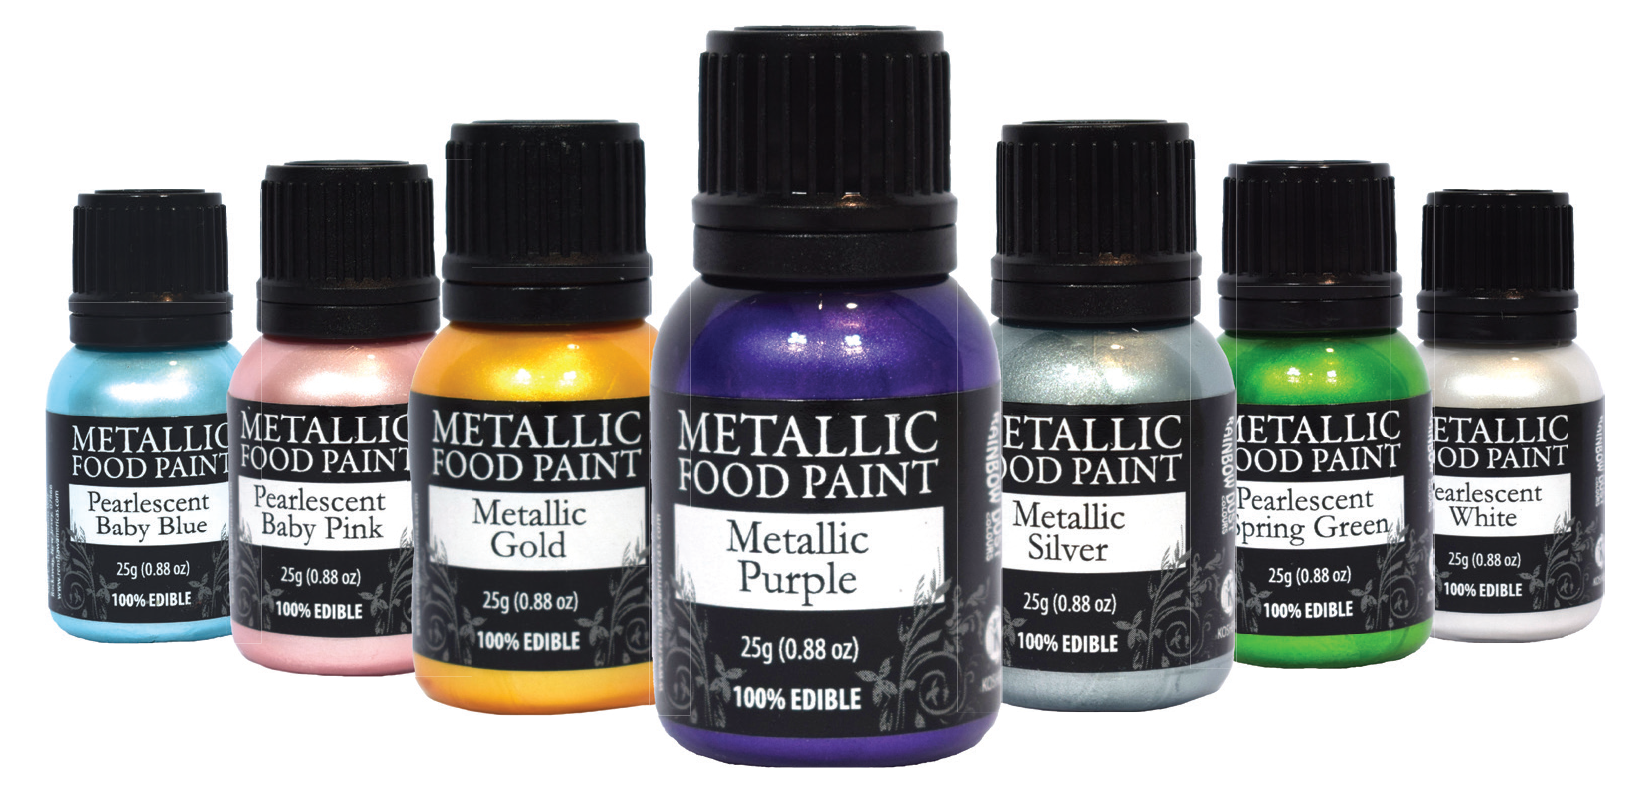 Metallic Food Paints